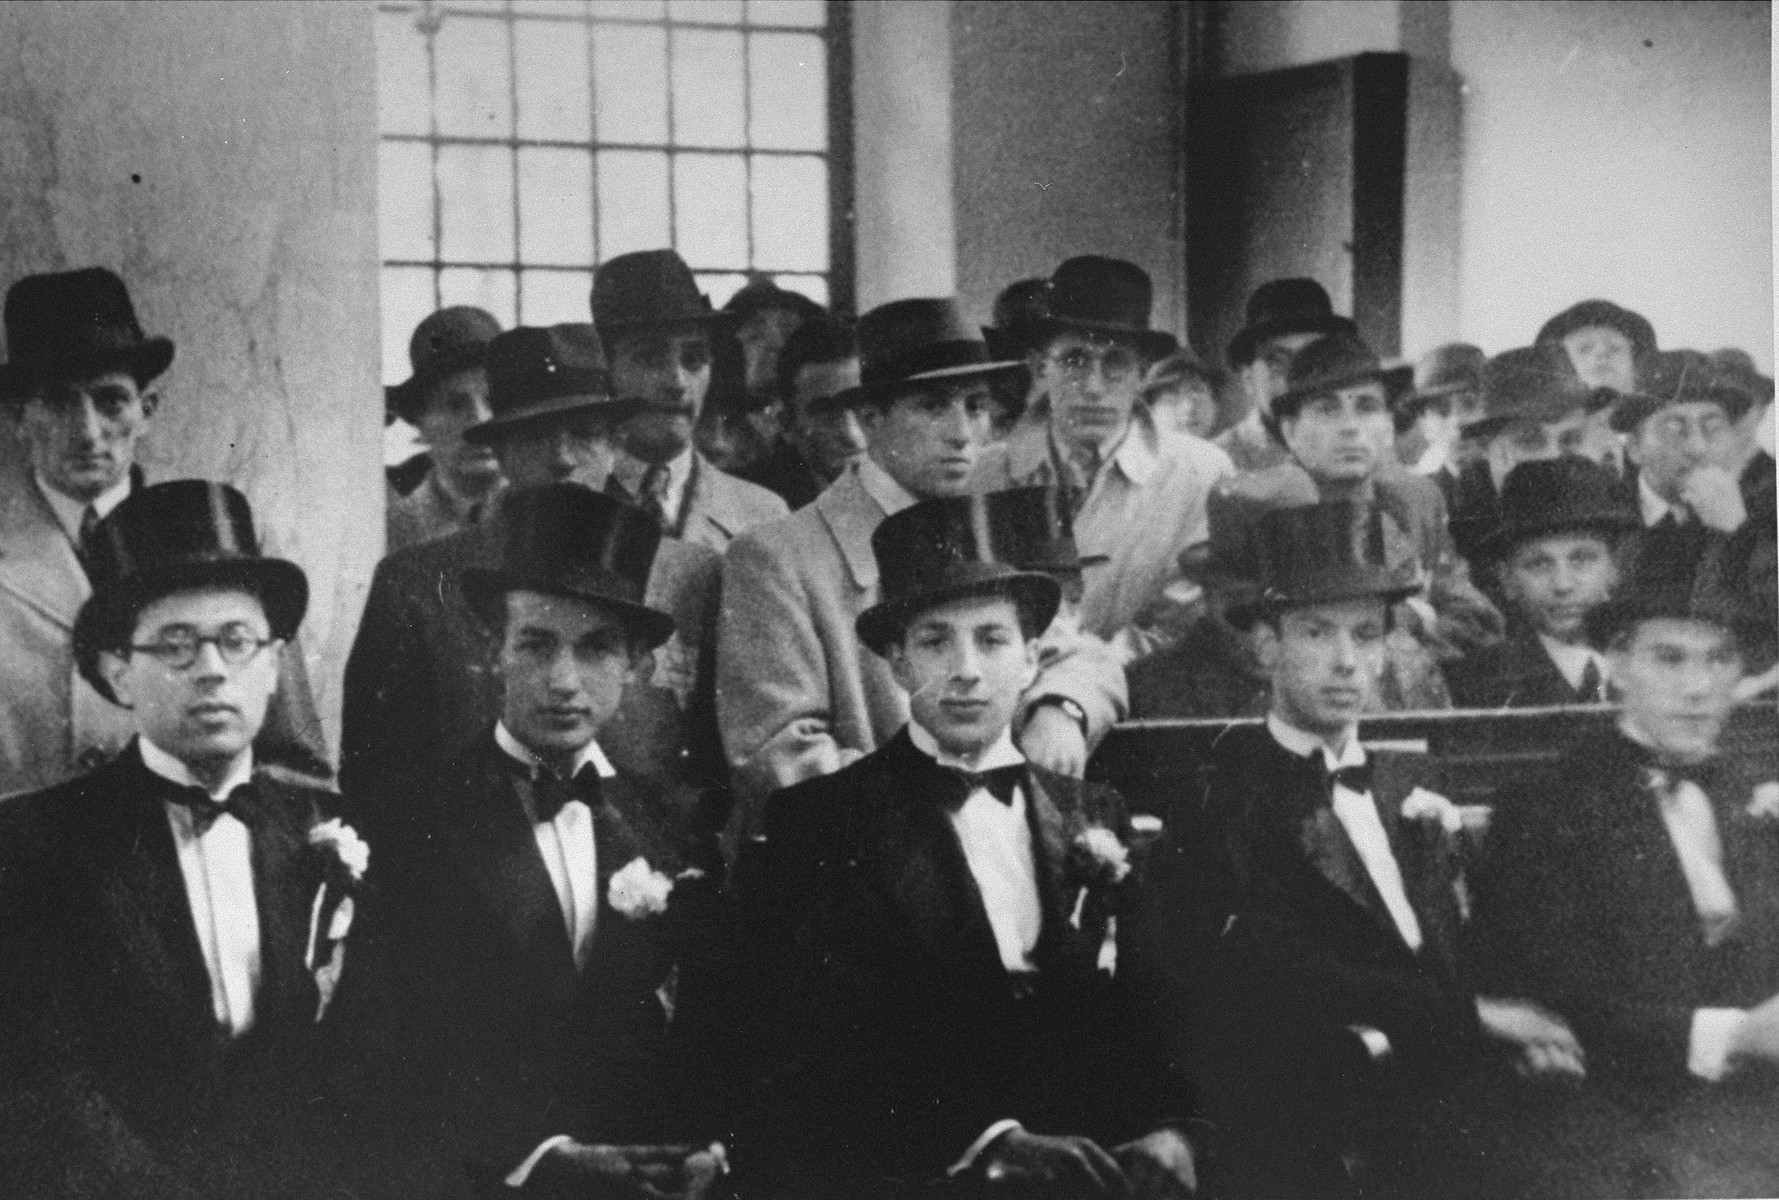 Male attendants at the wedding of Herman de Leeuw and Annie Pais sit in a pew of the Sephardic synagogue in the Jewish quarter of Amsterdam.    Pictured in the front row, third from the left, is Samuel Schrijver.